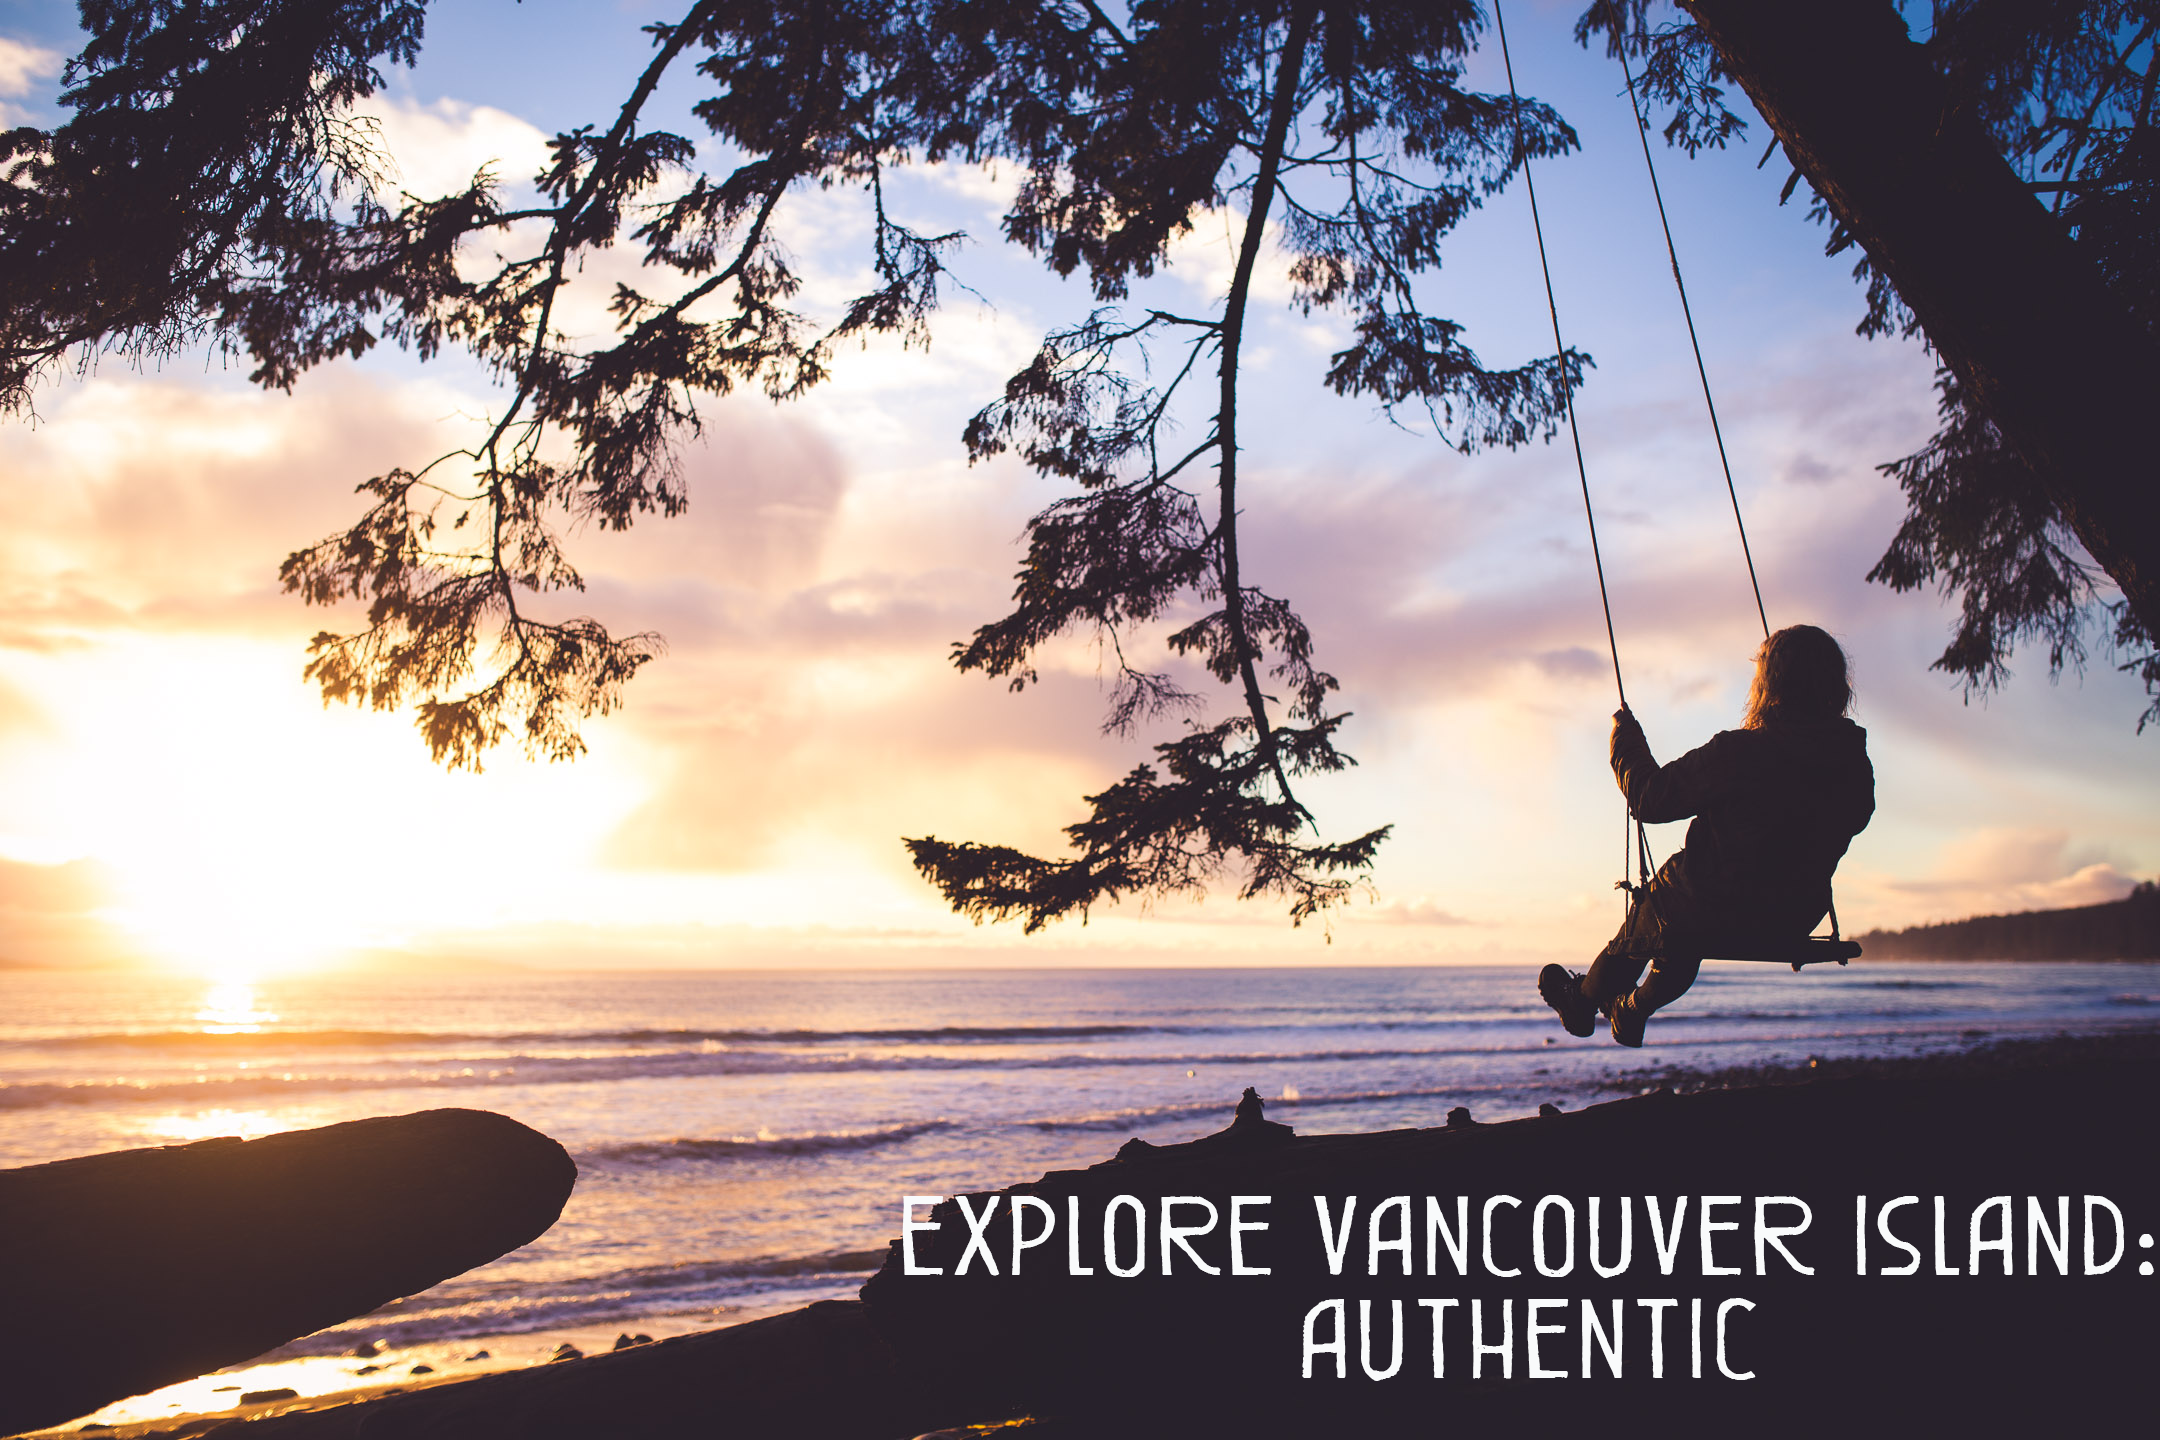 Produced in association with: Destination BC, Tourism Vancouver Island, Hot House Marketing